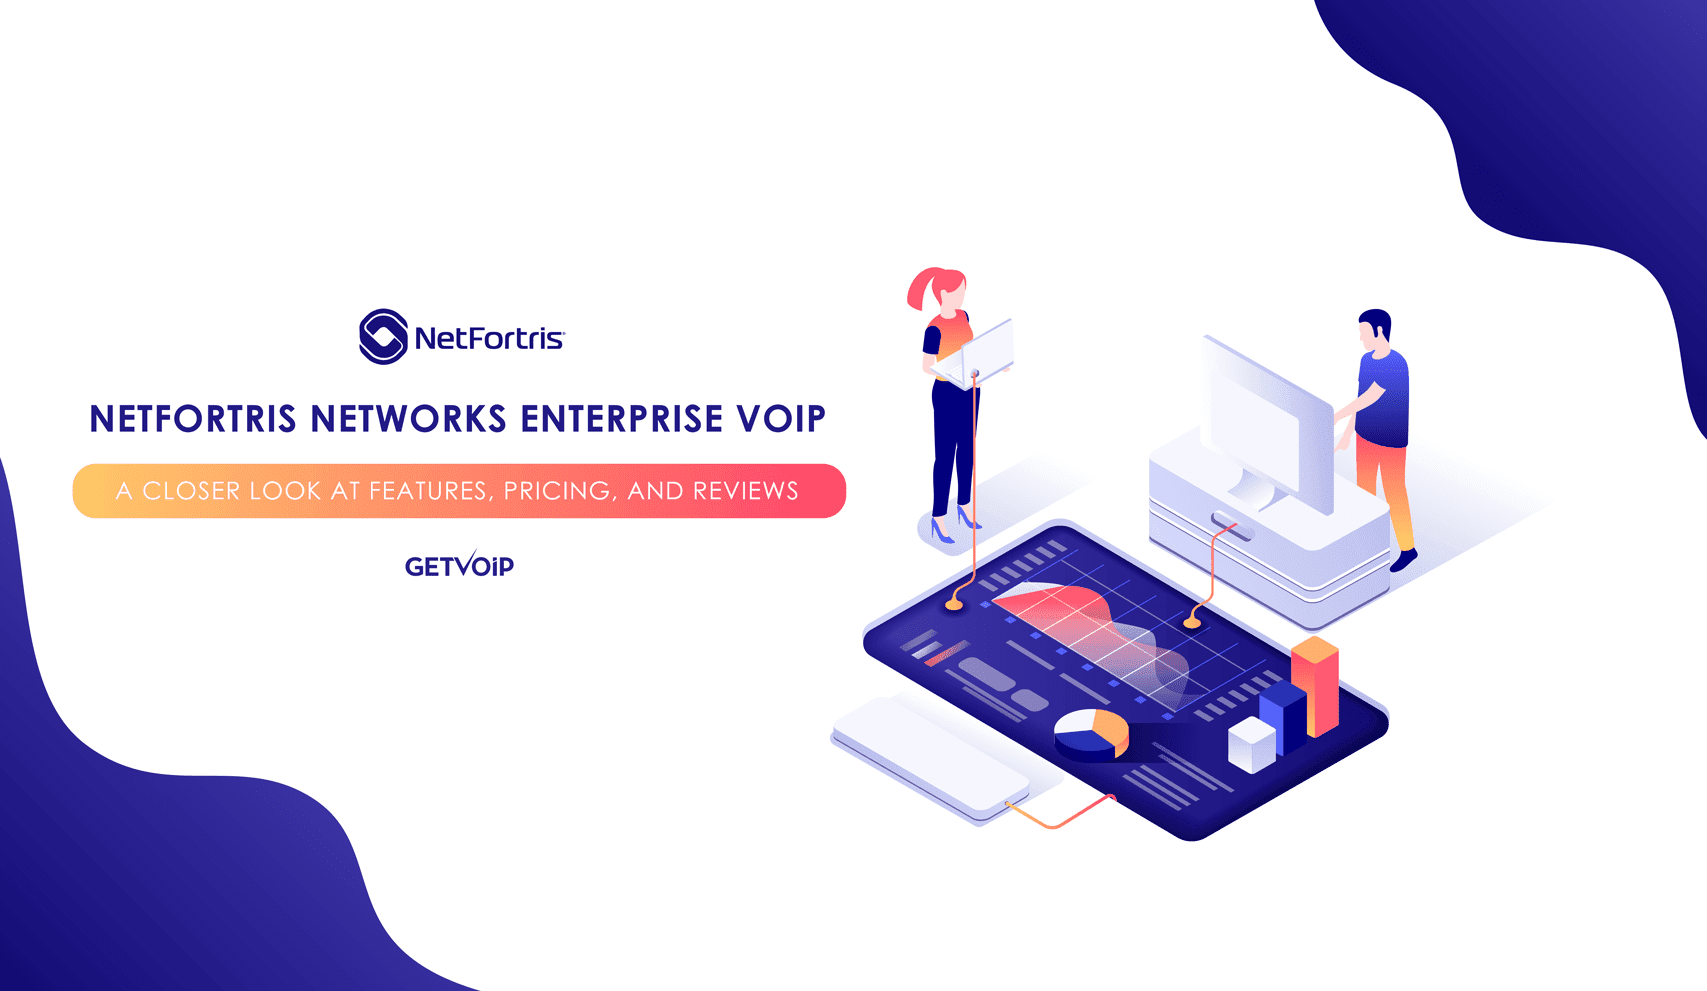 NetFortris Networks Enterprise VoIP: A Closer Look at Features, Pricing, and Reviews